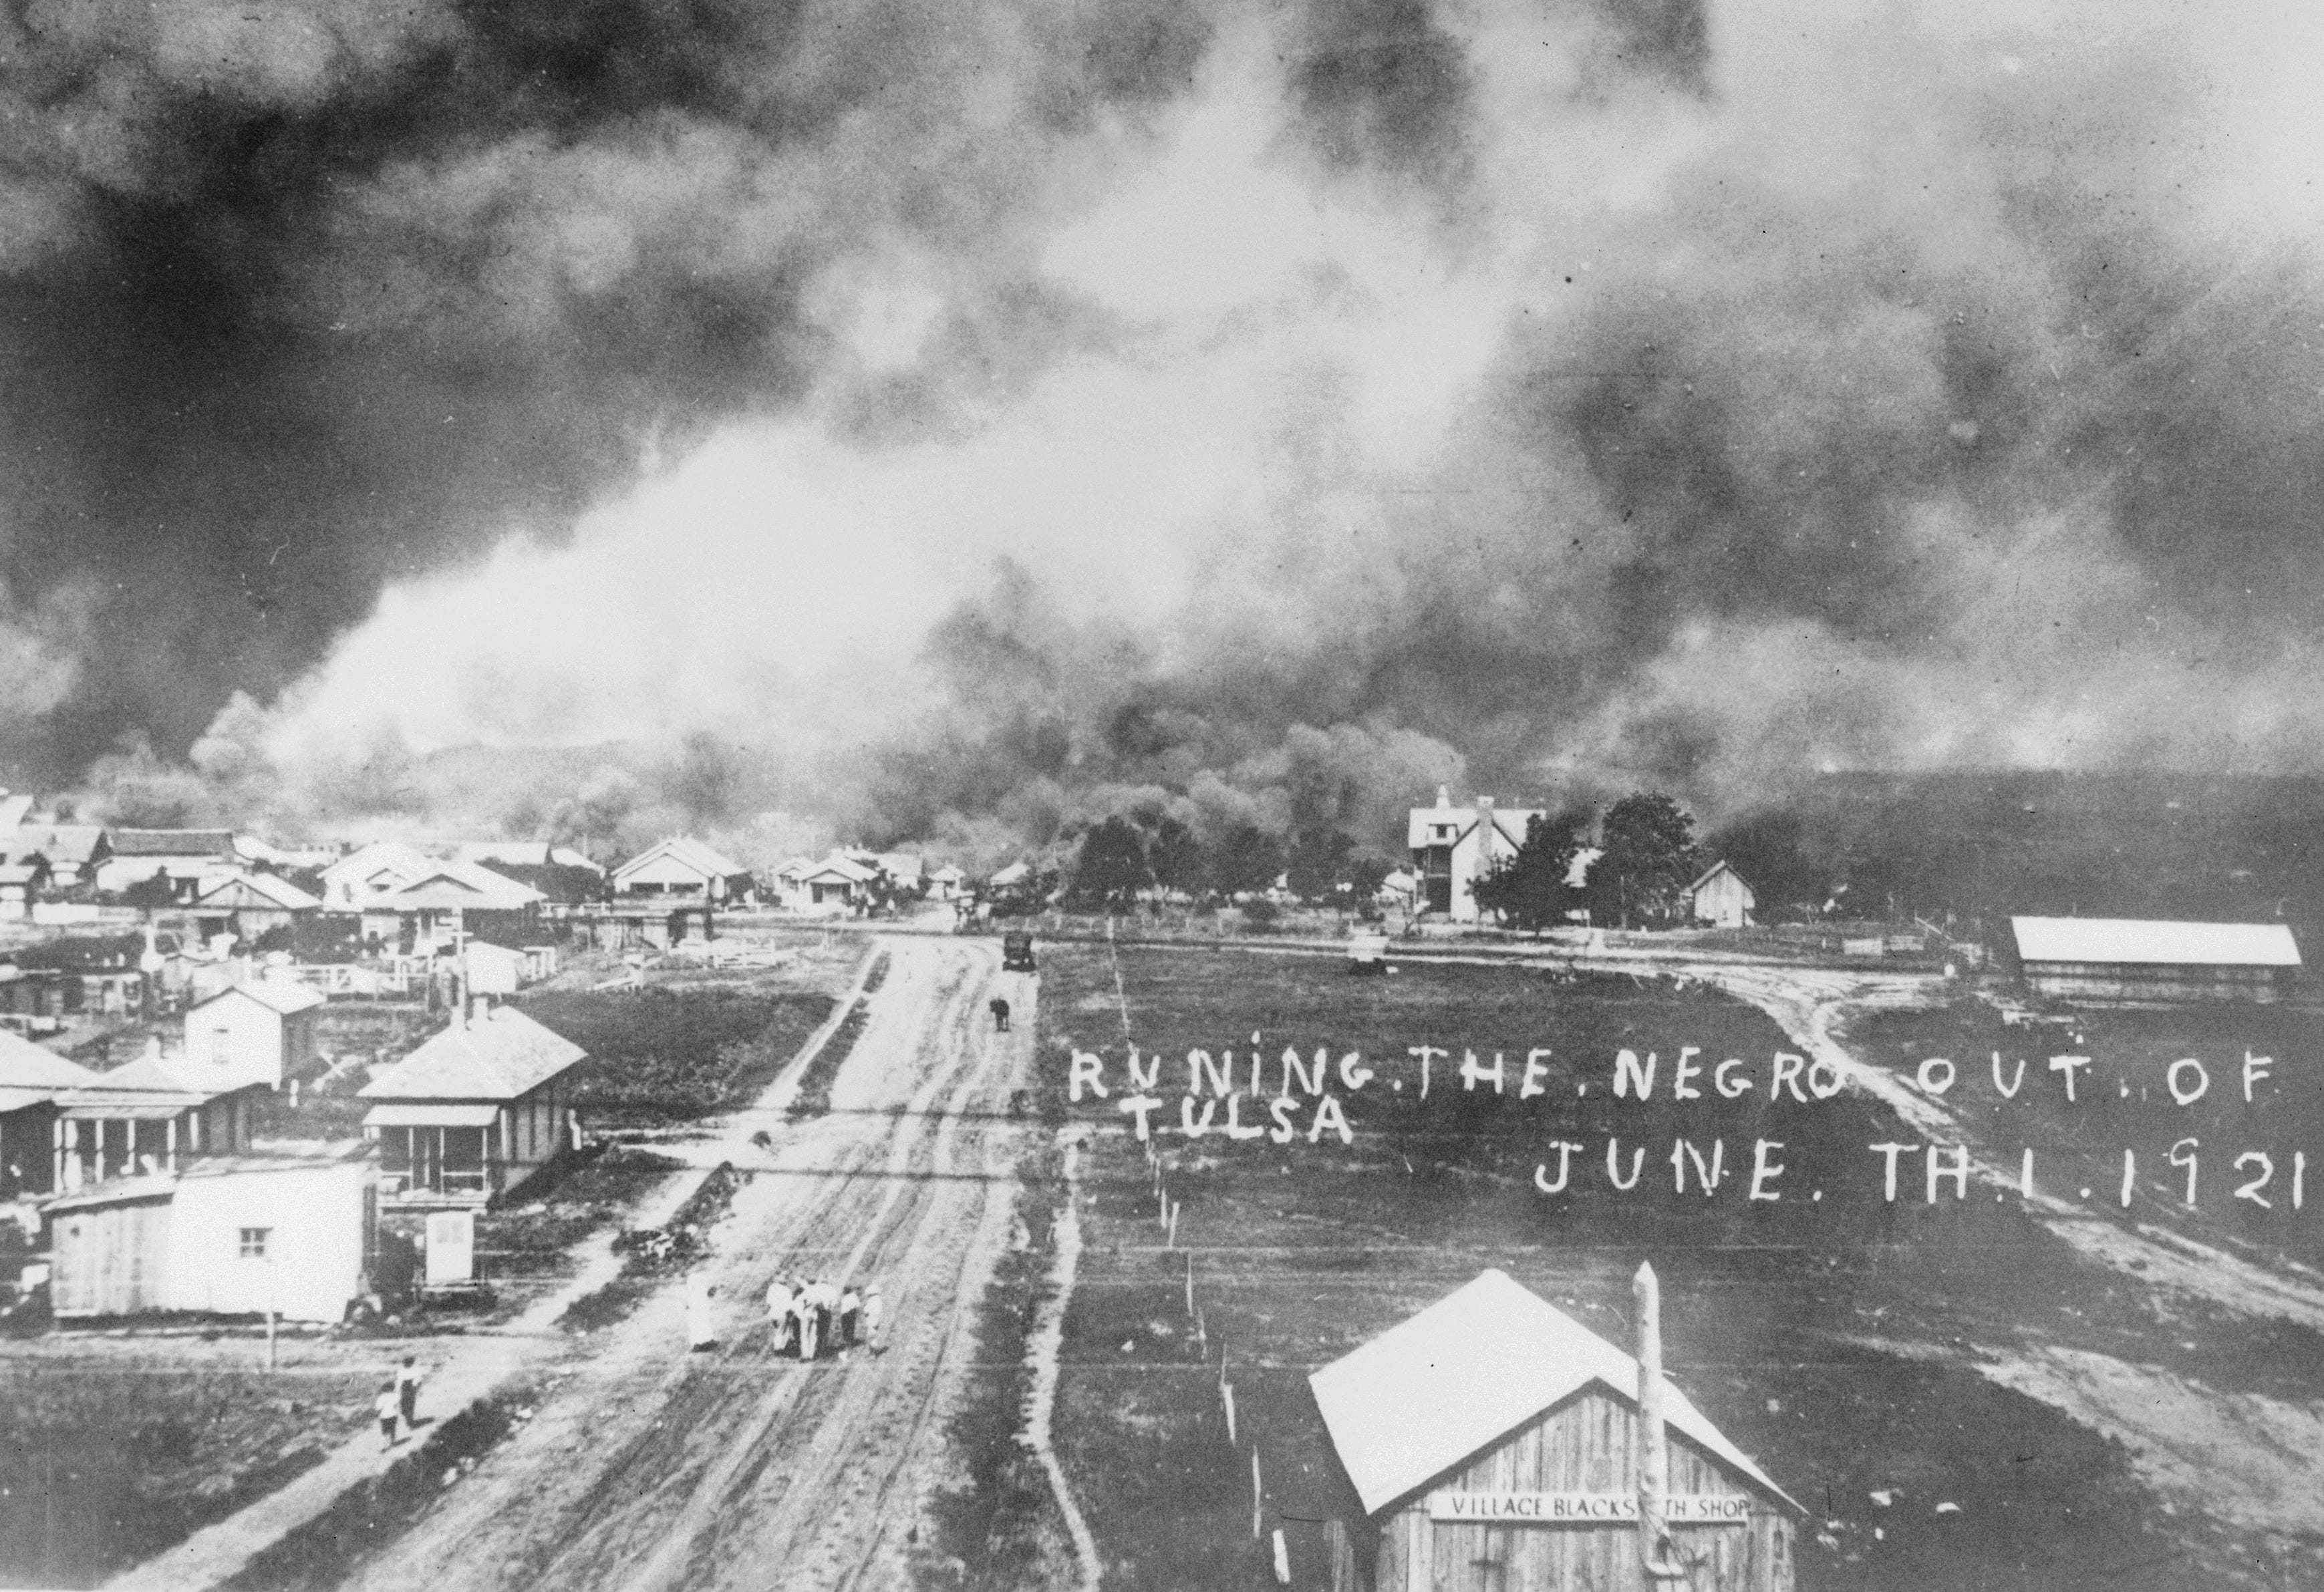 """Picture postcards were printed proclaiming """"running the negro out of Tulsa"""" against a backdrop of the smoldering ruins of people's homes."""